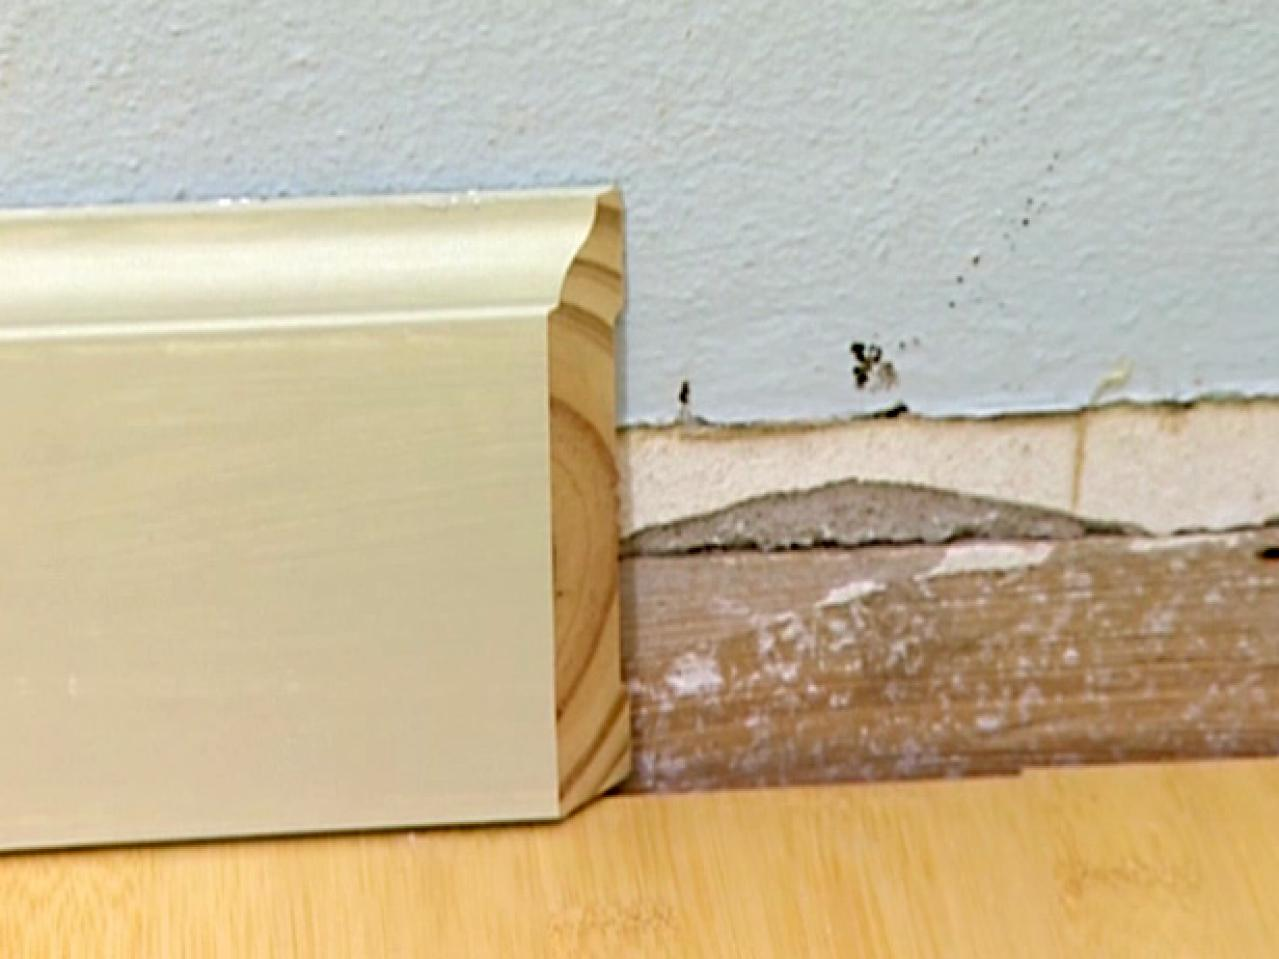 How to cut base molding in place - Nail The First Piece Of Baseboard Into The Wall At